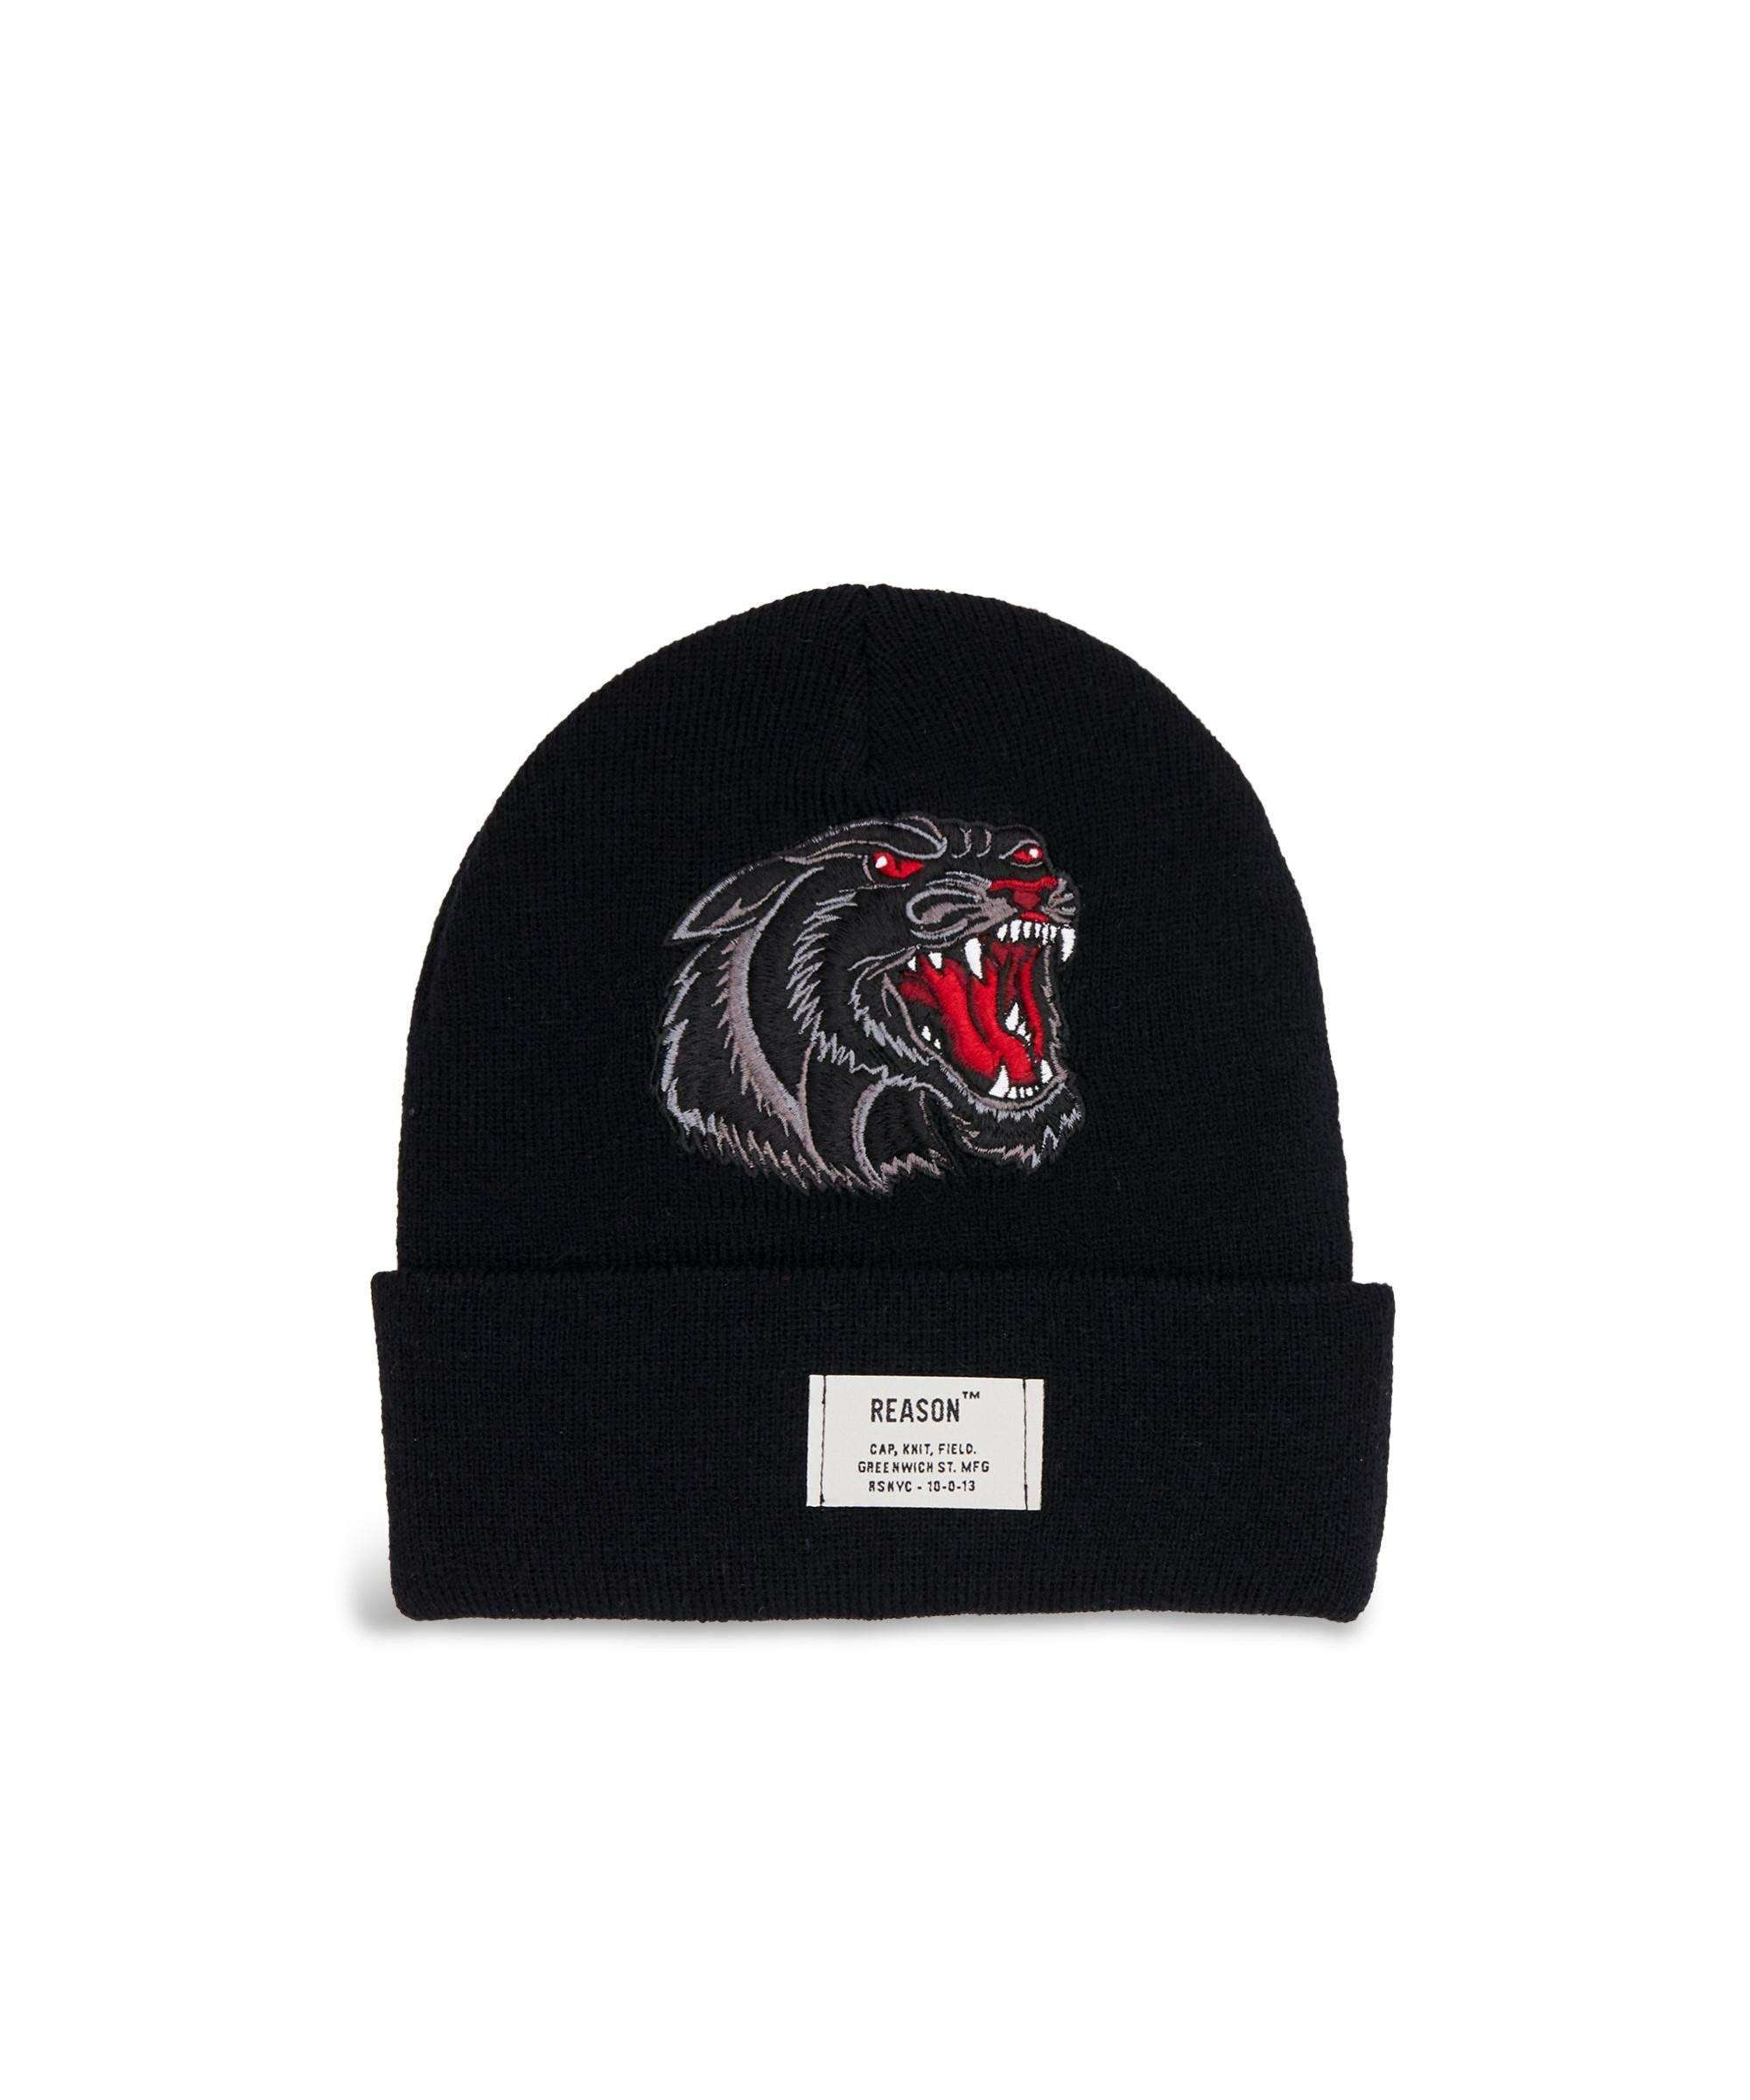 PANTHER BEANIE - BLACK - Reason Clothing